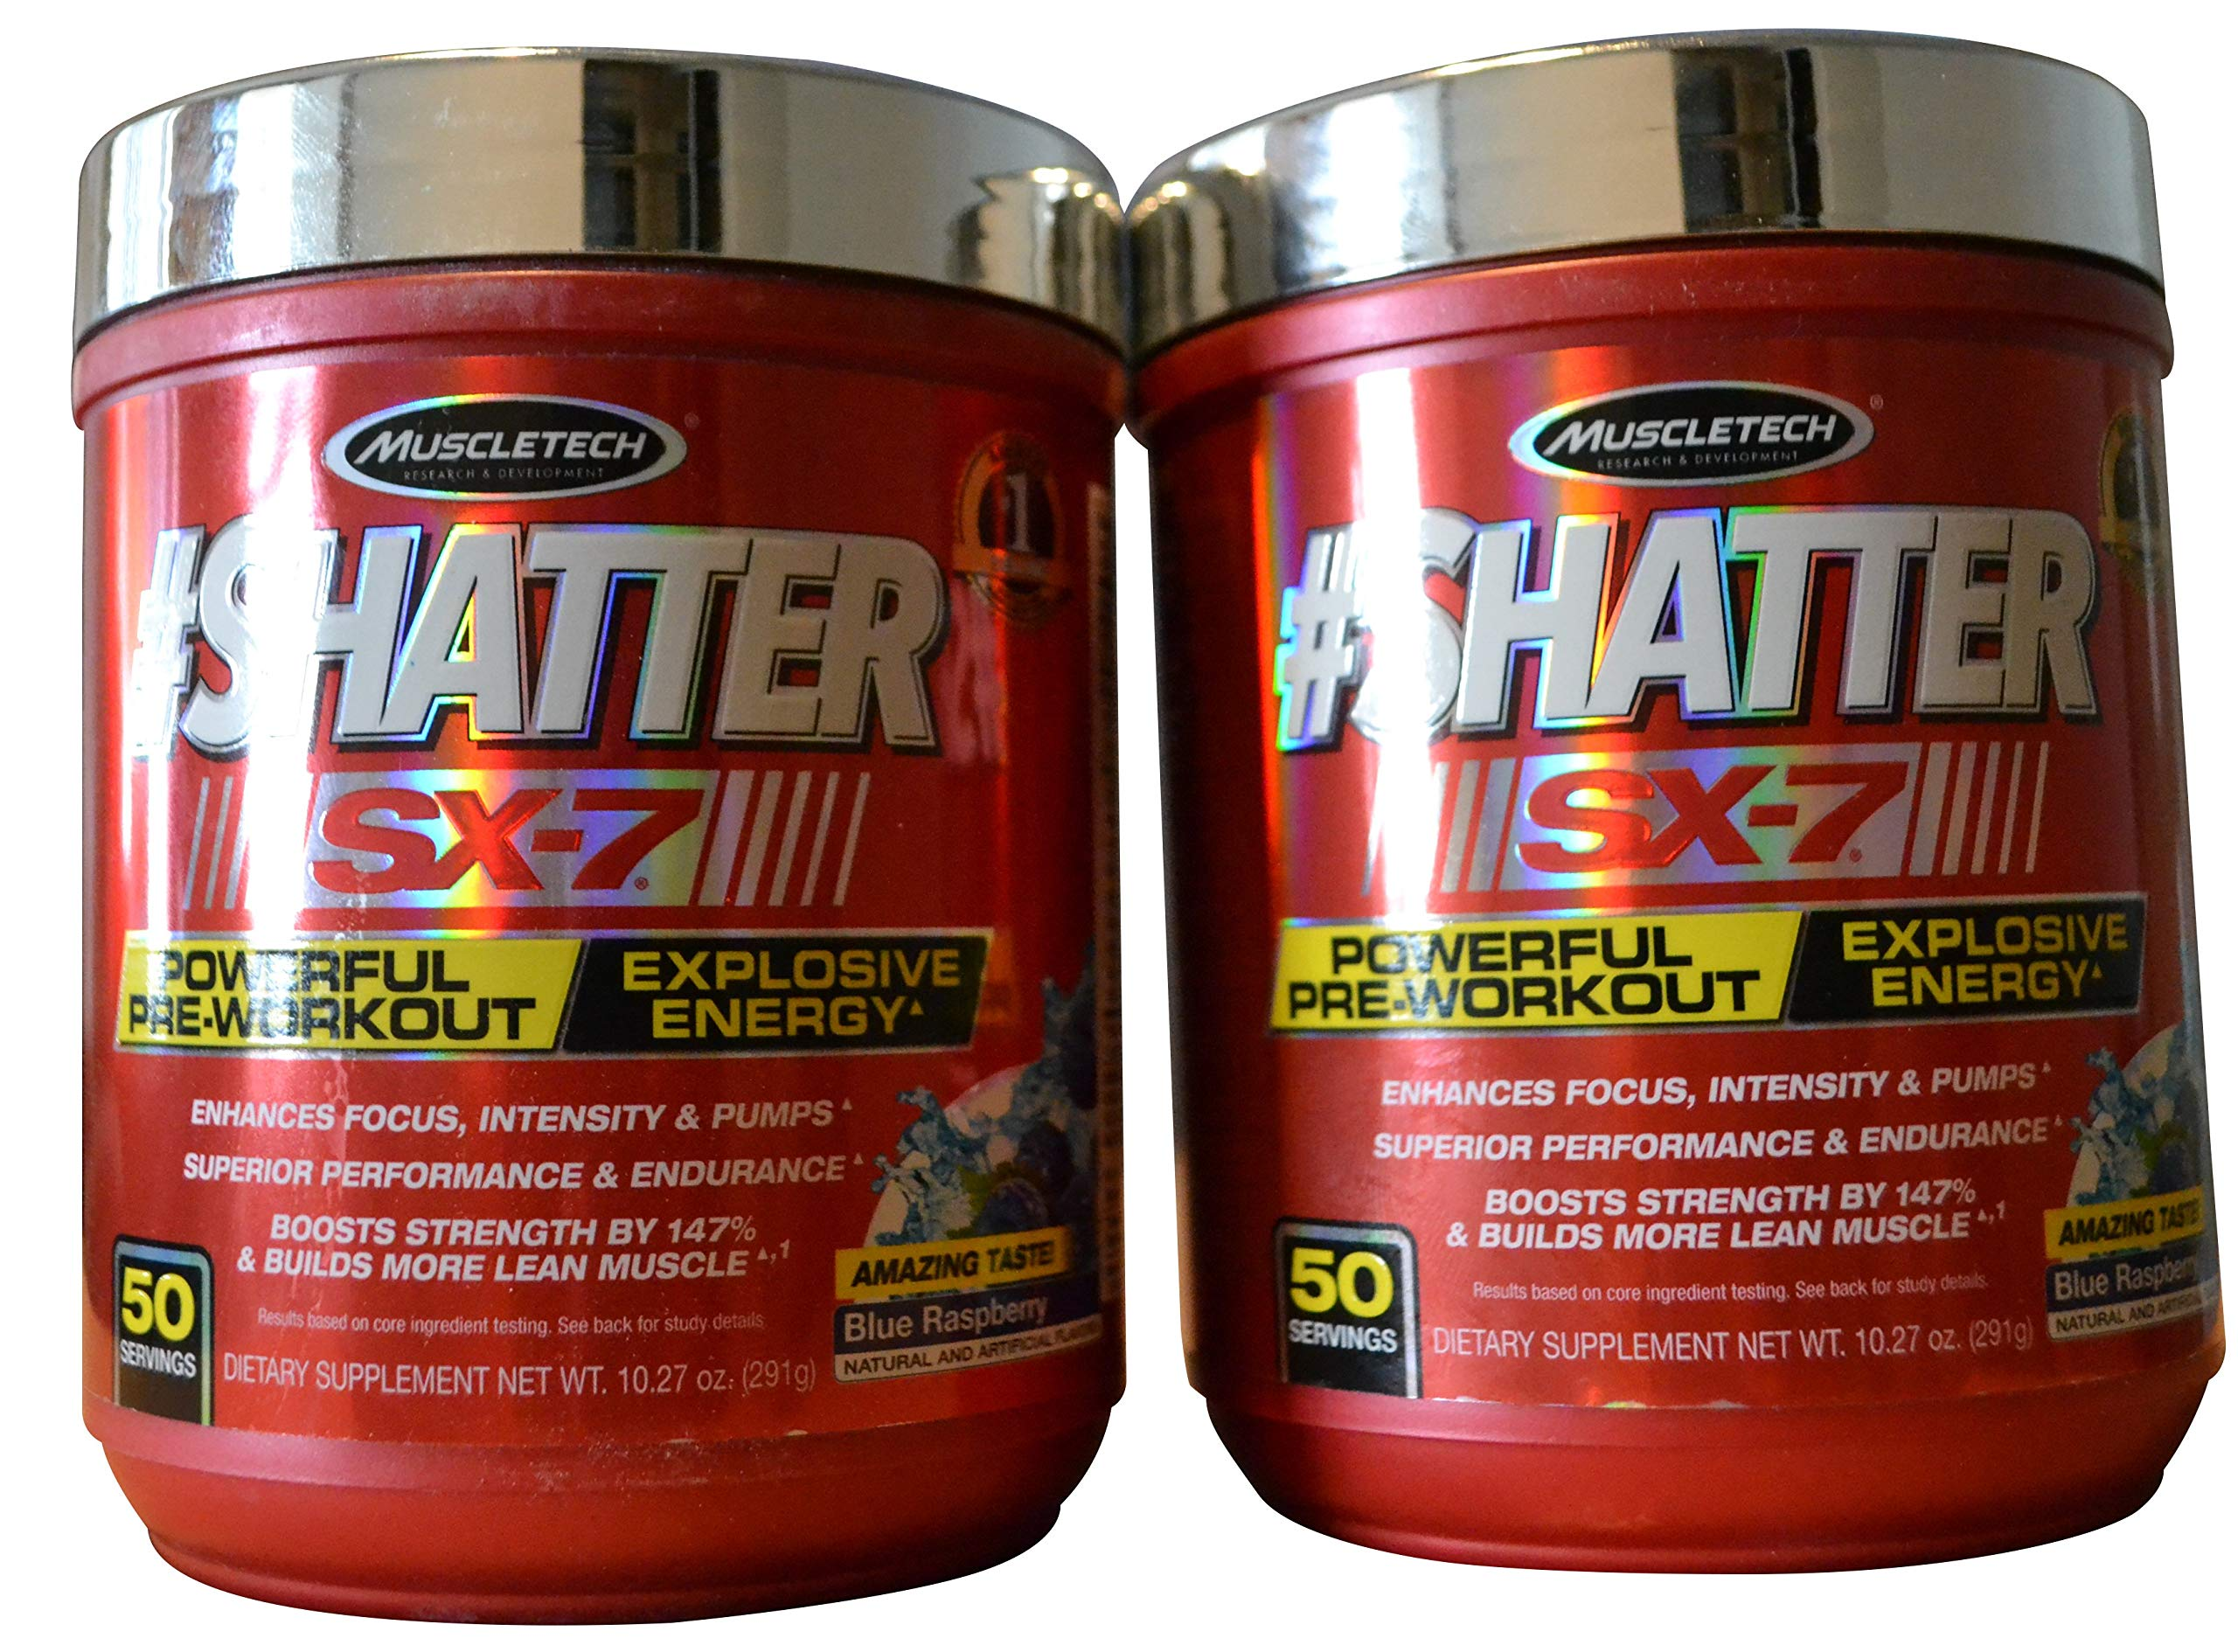 MuscleTech #Shatter SX-7 Blue Raspberry Pre-Workout (Pack of 2) 100 Servings